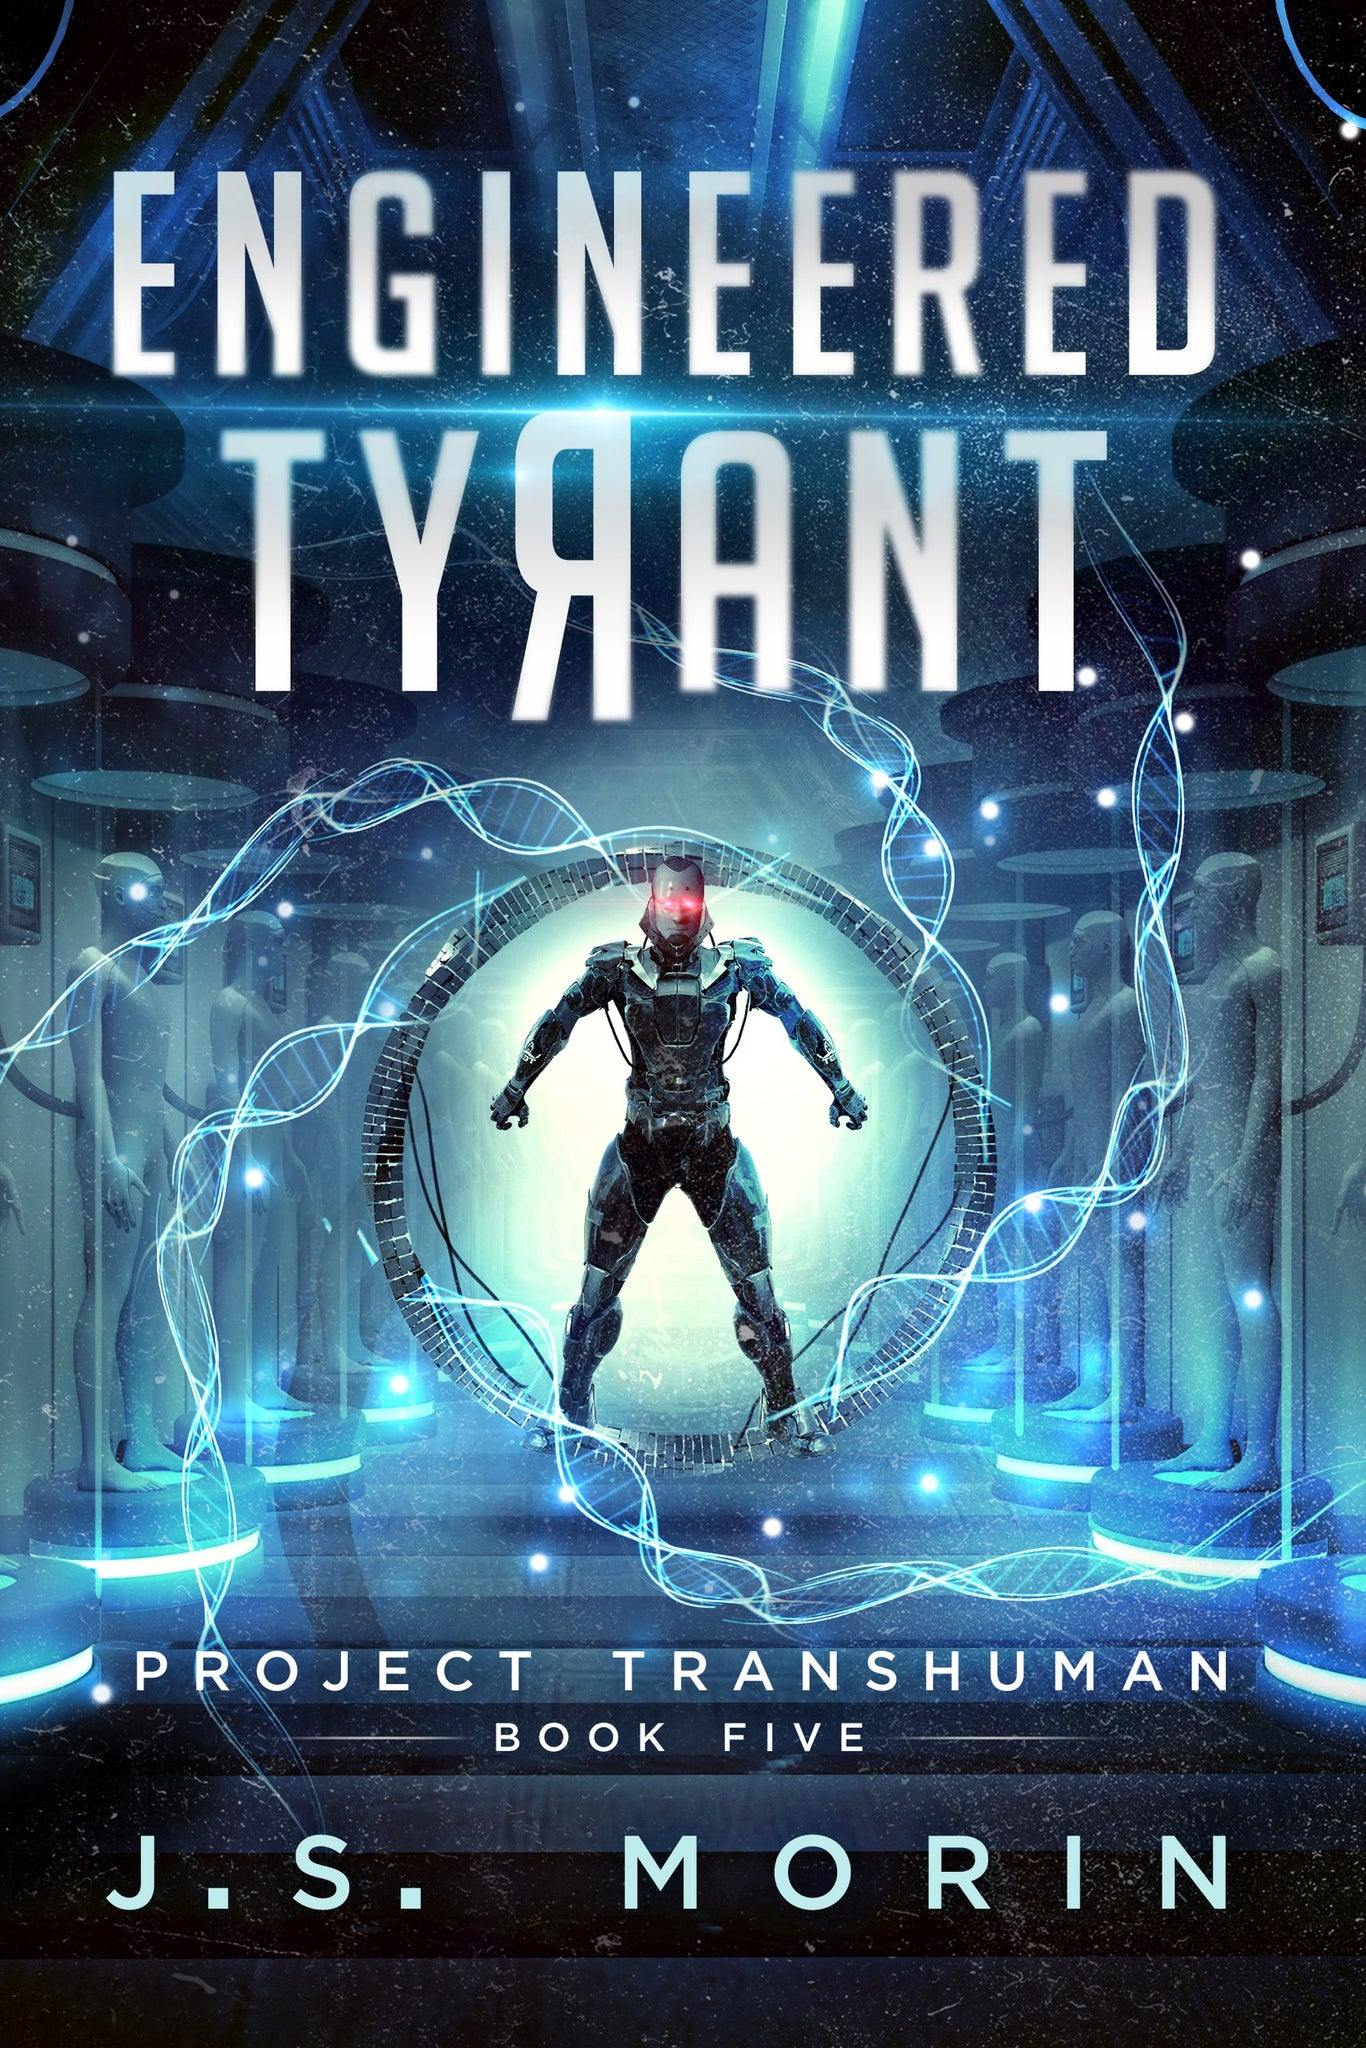 Engineered Tyrant, Project Transhuman, Book 5